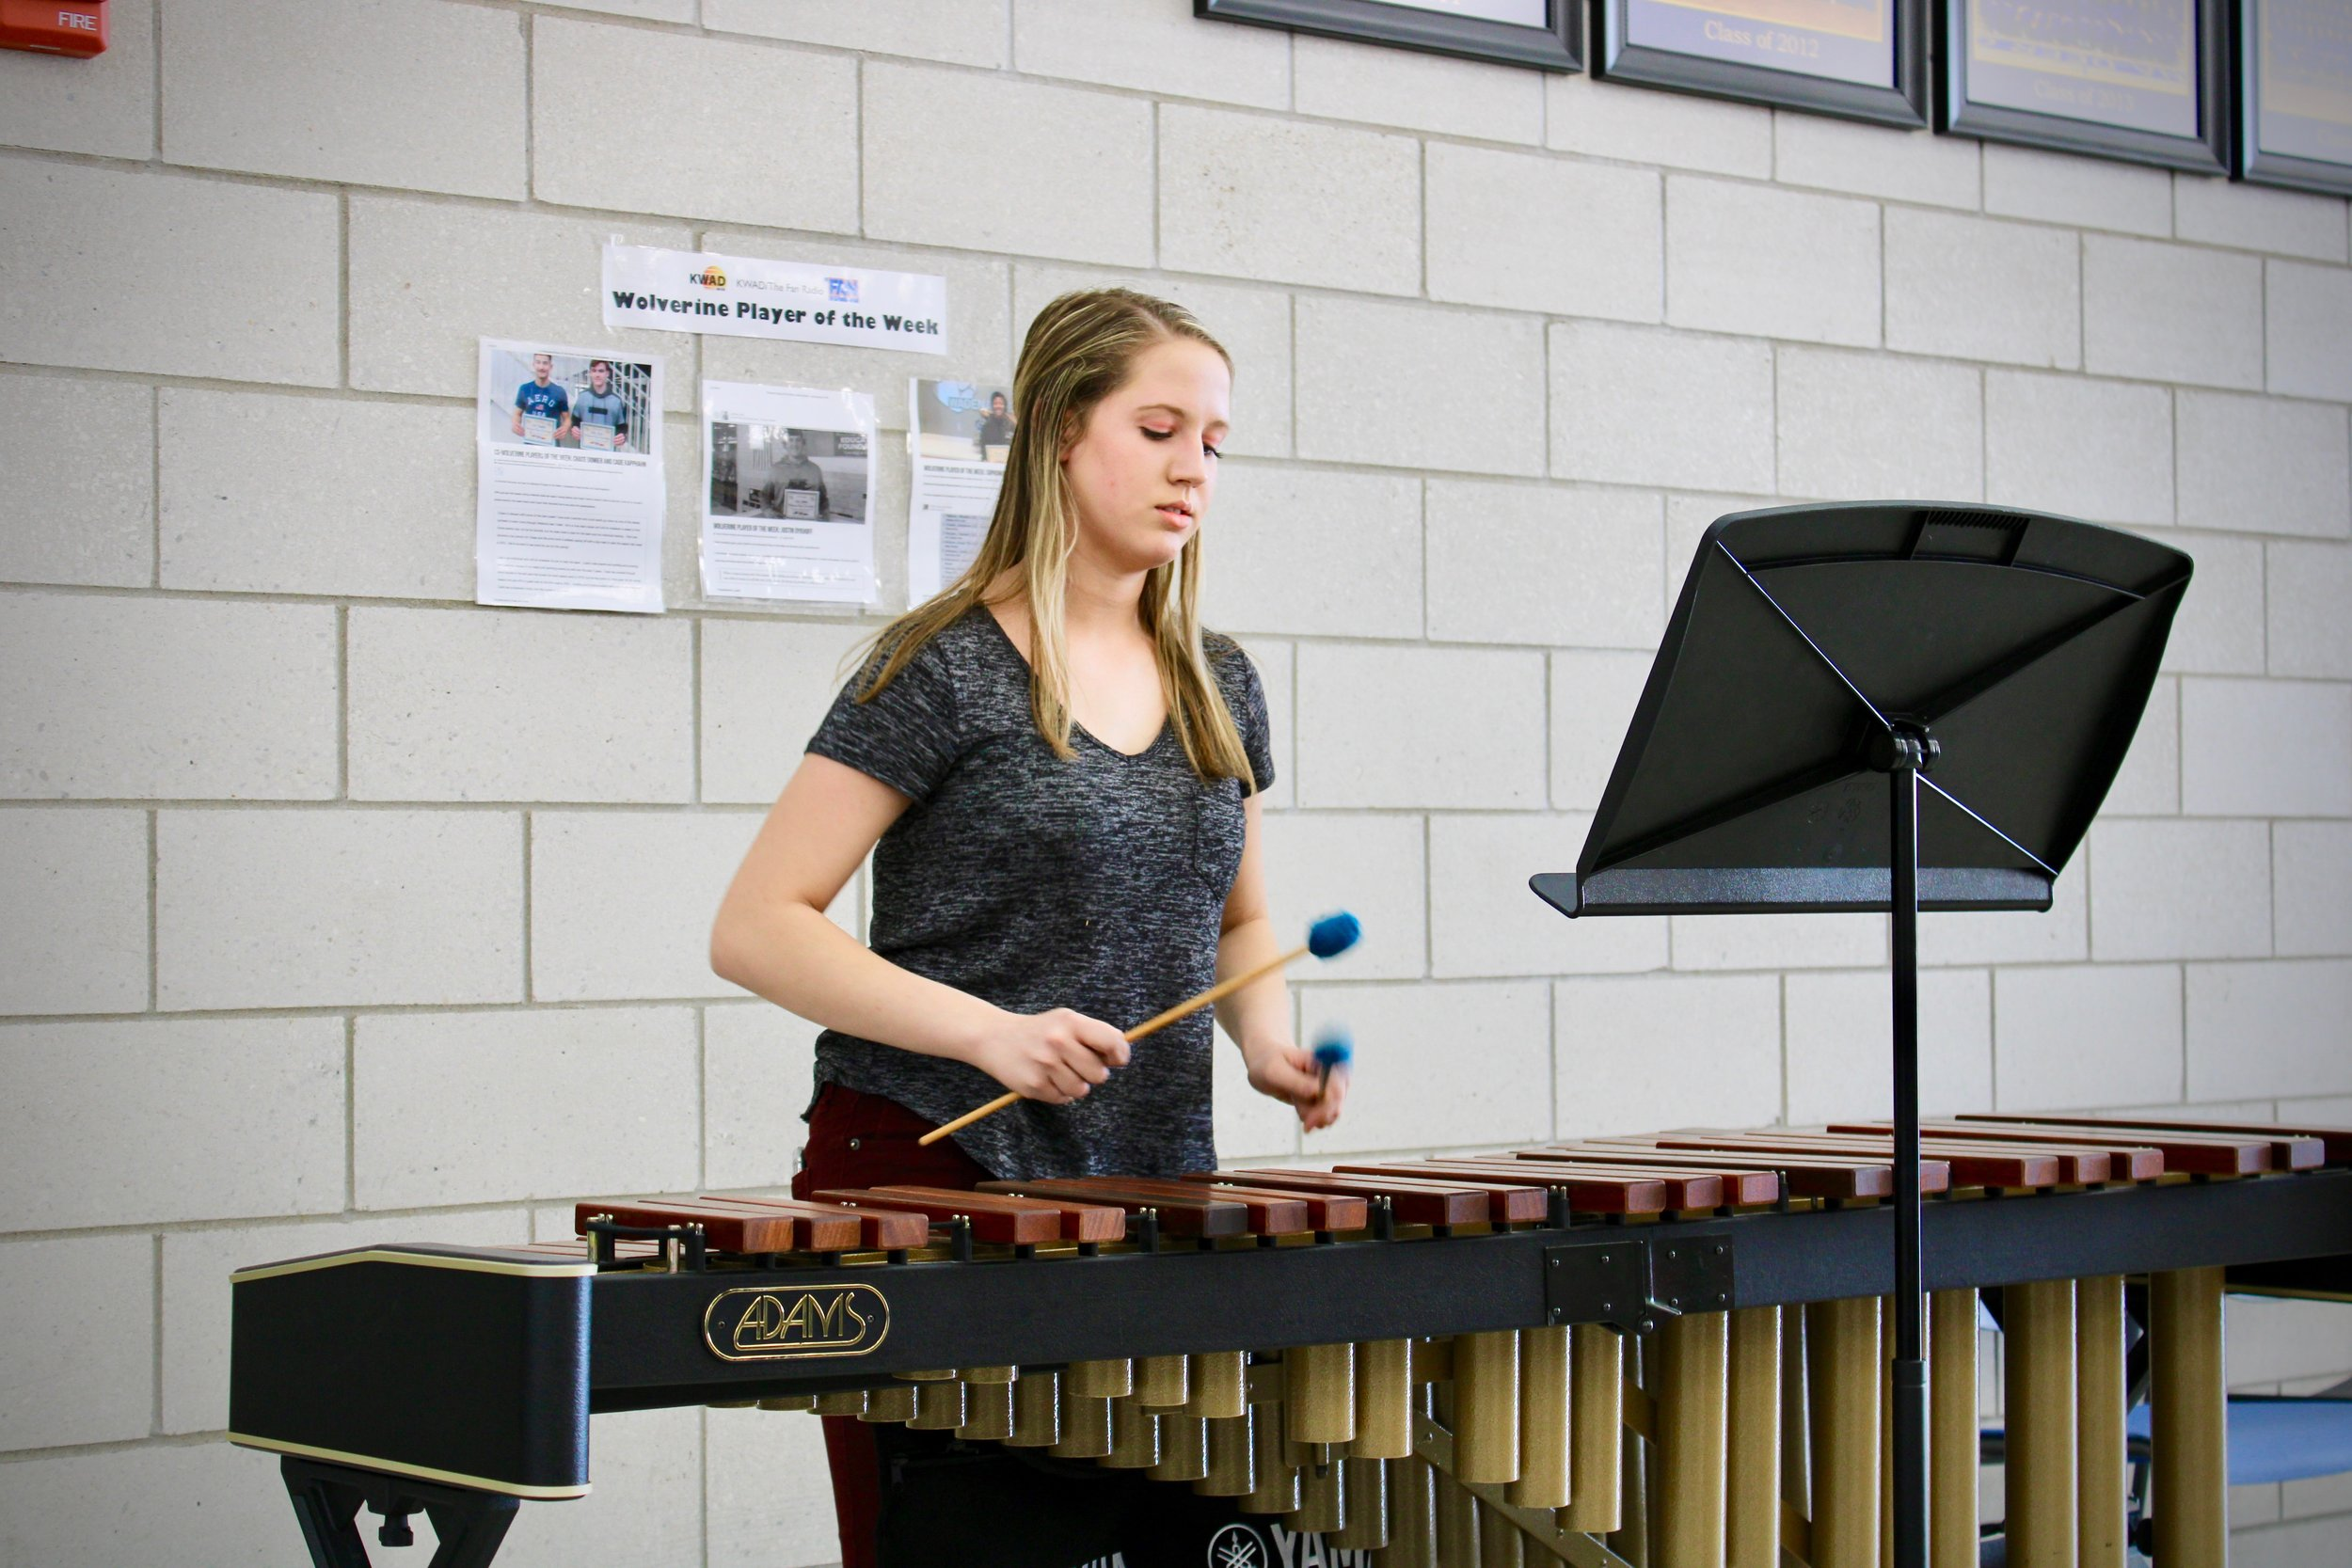 The evening's entertainment included an enchanting marimba solo performed by Junior, Margaret Carlson, exemplifying the fine arts excellence at WDC.